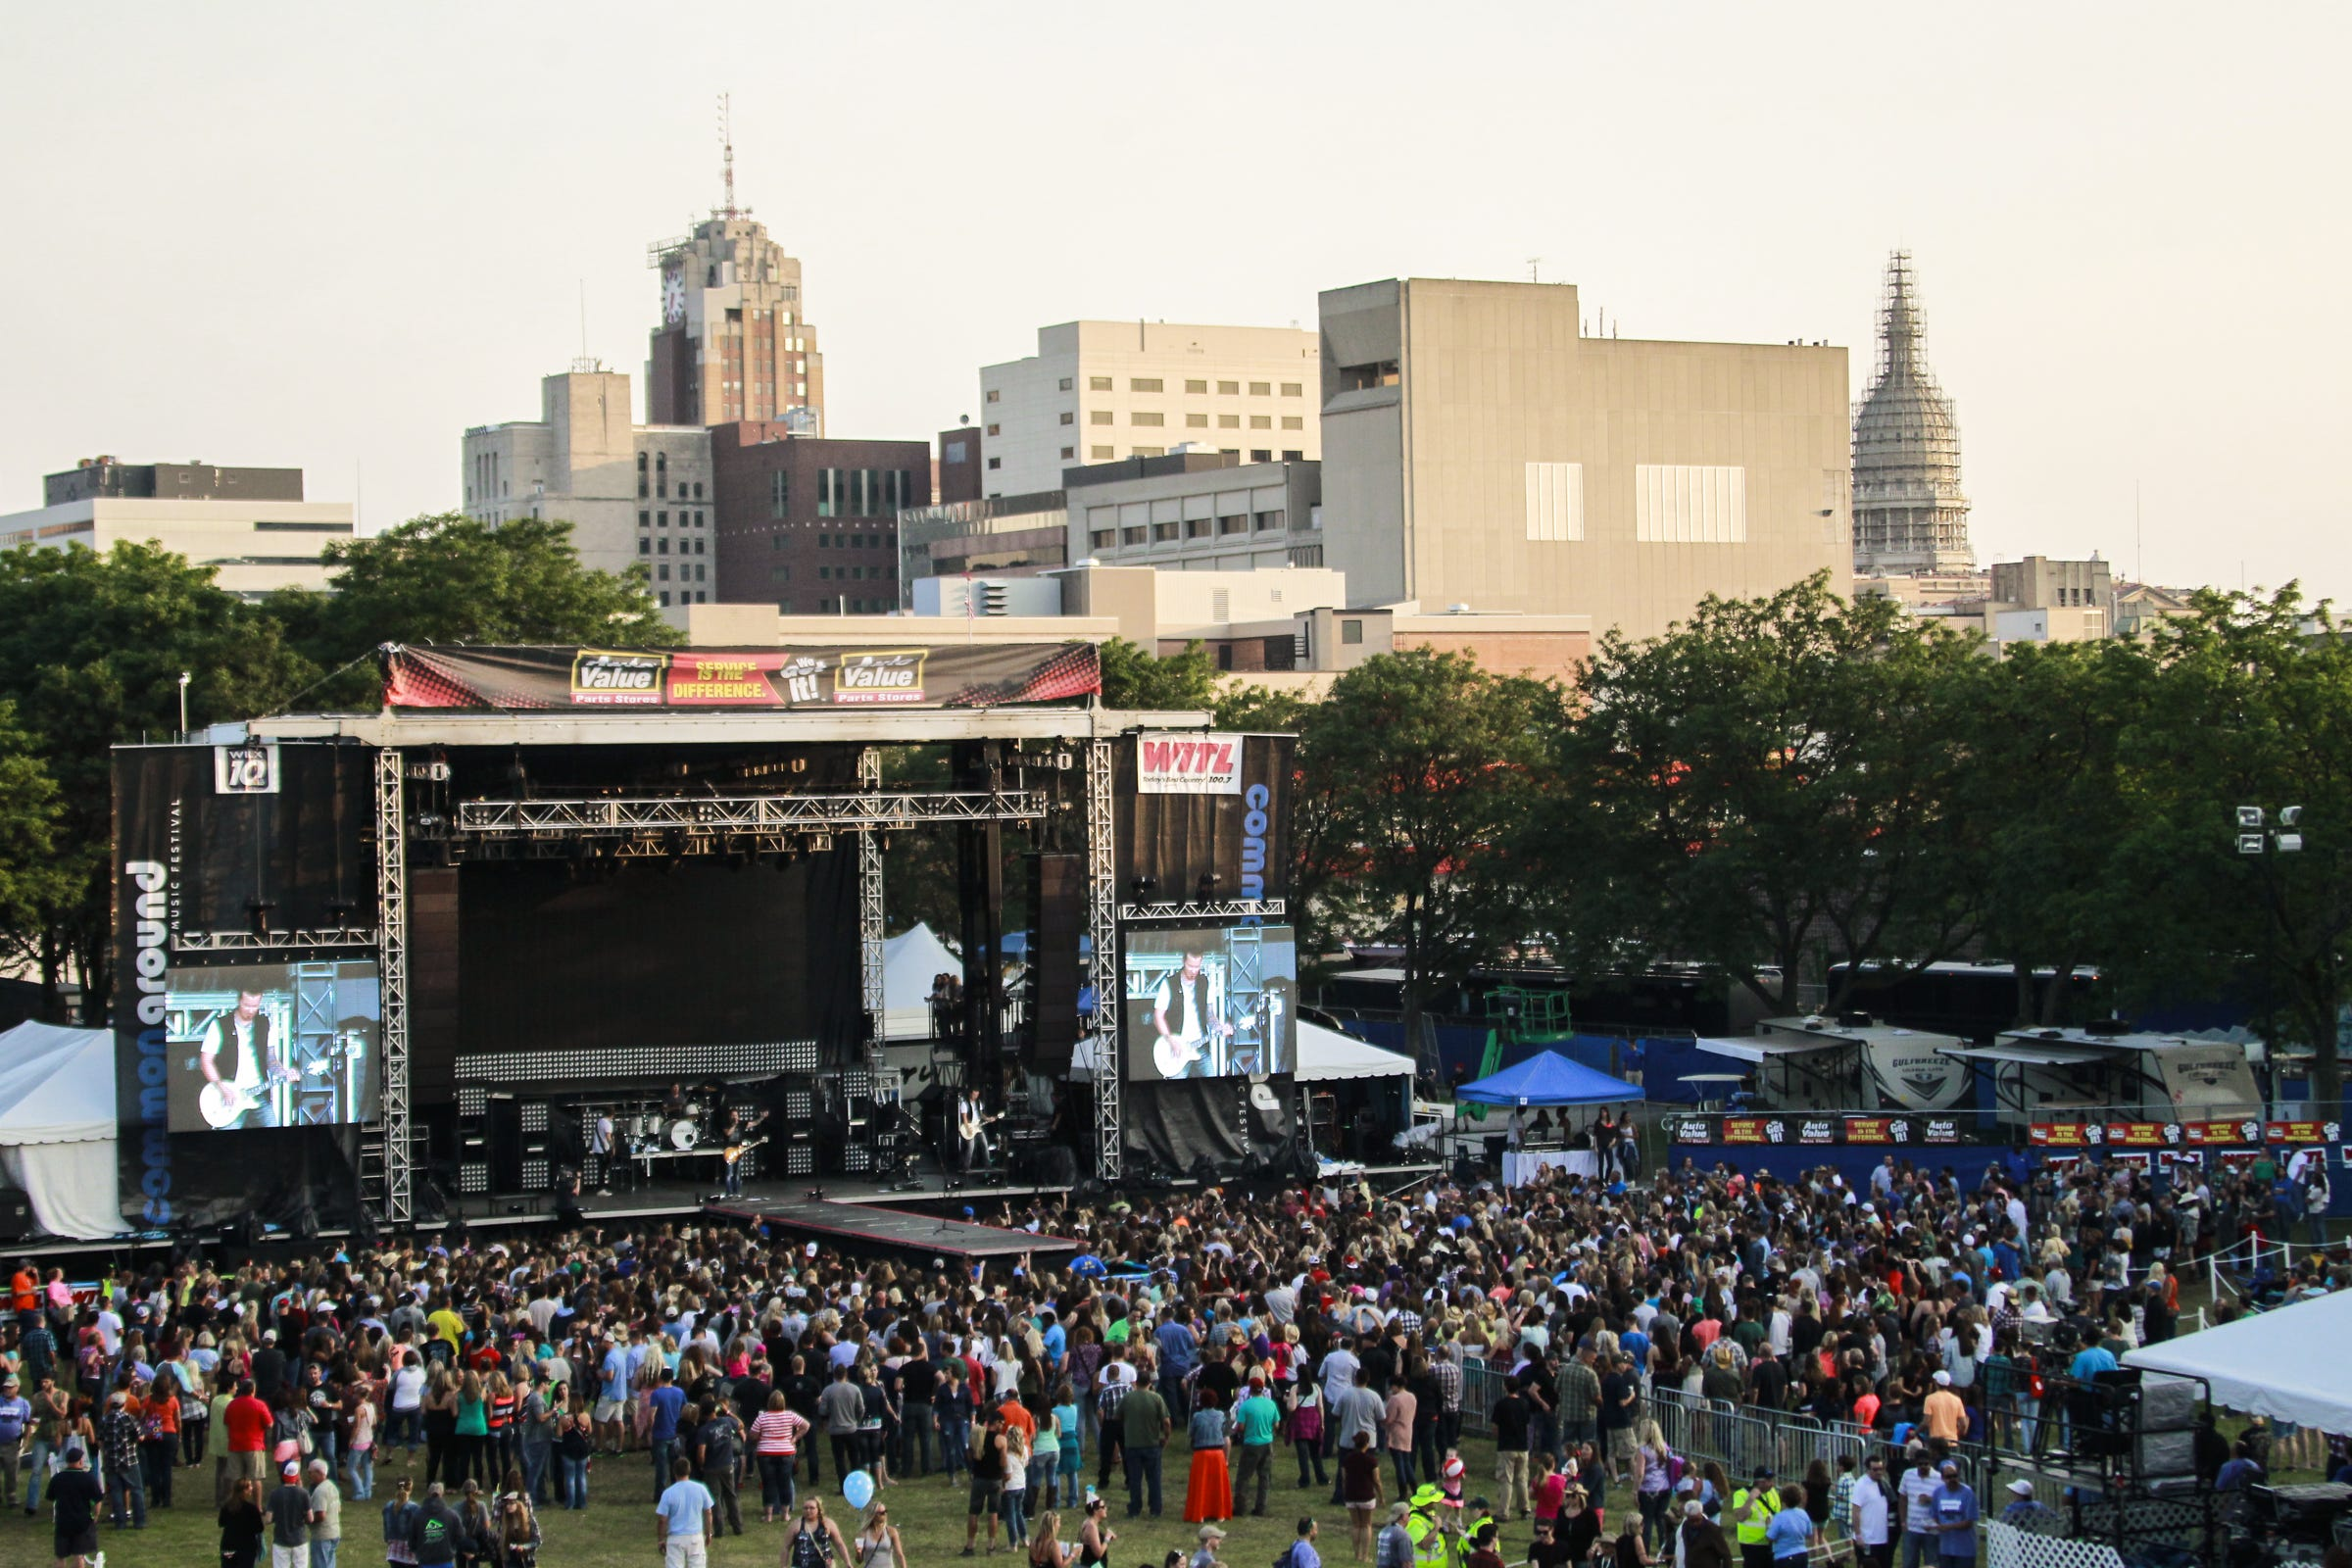 The Common Ground Music Festival will be held June 27 to 30, 2019 at Adado Riverfront Park in downtown Lansing. The multi-day festival started 20 years ago.